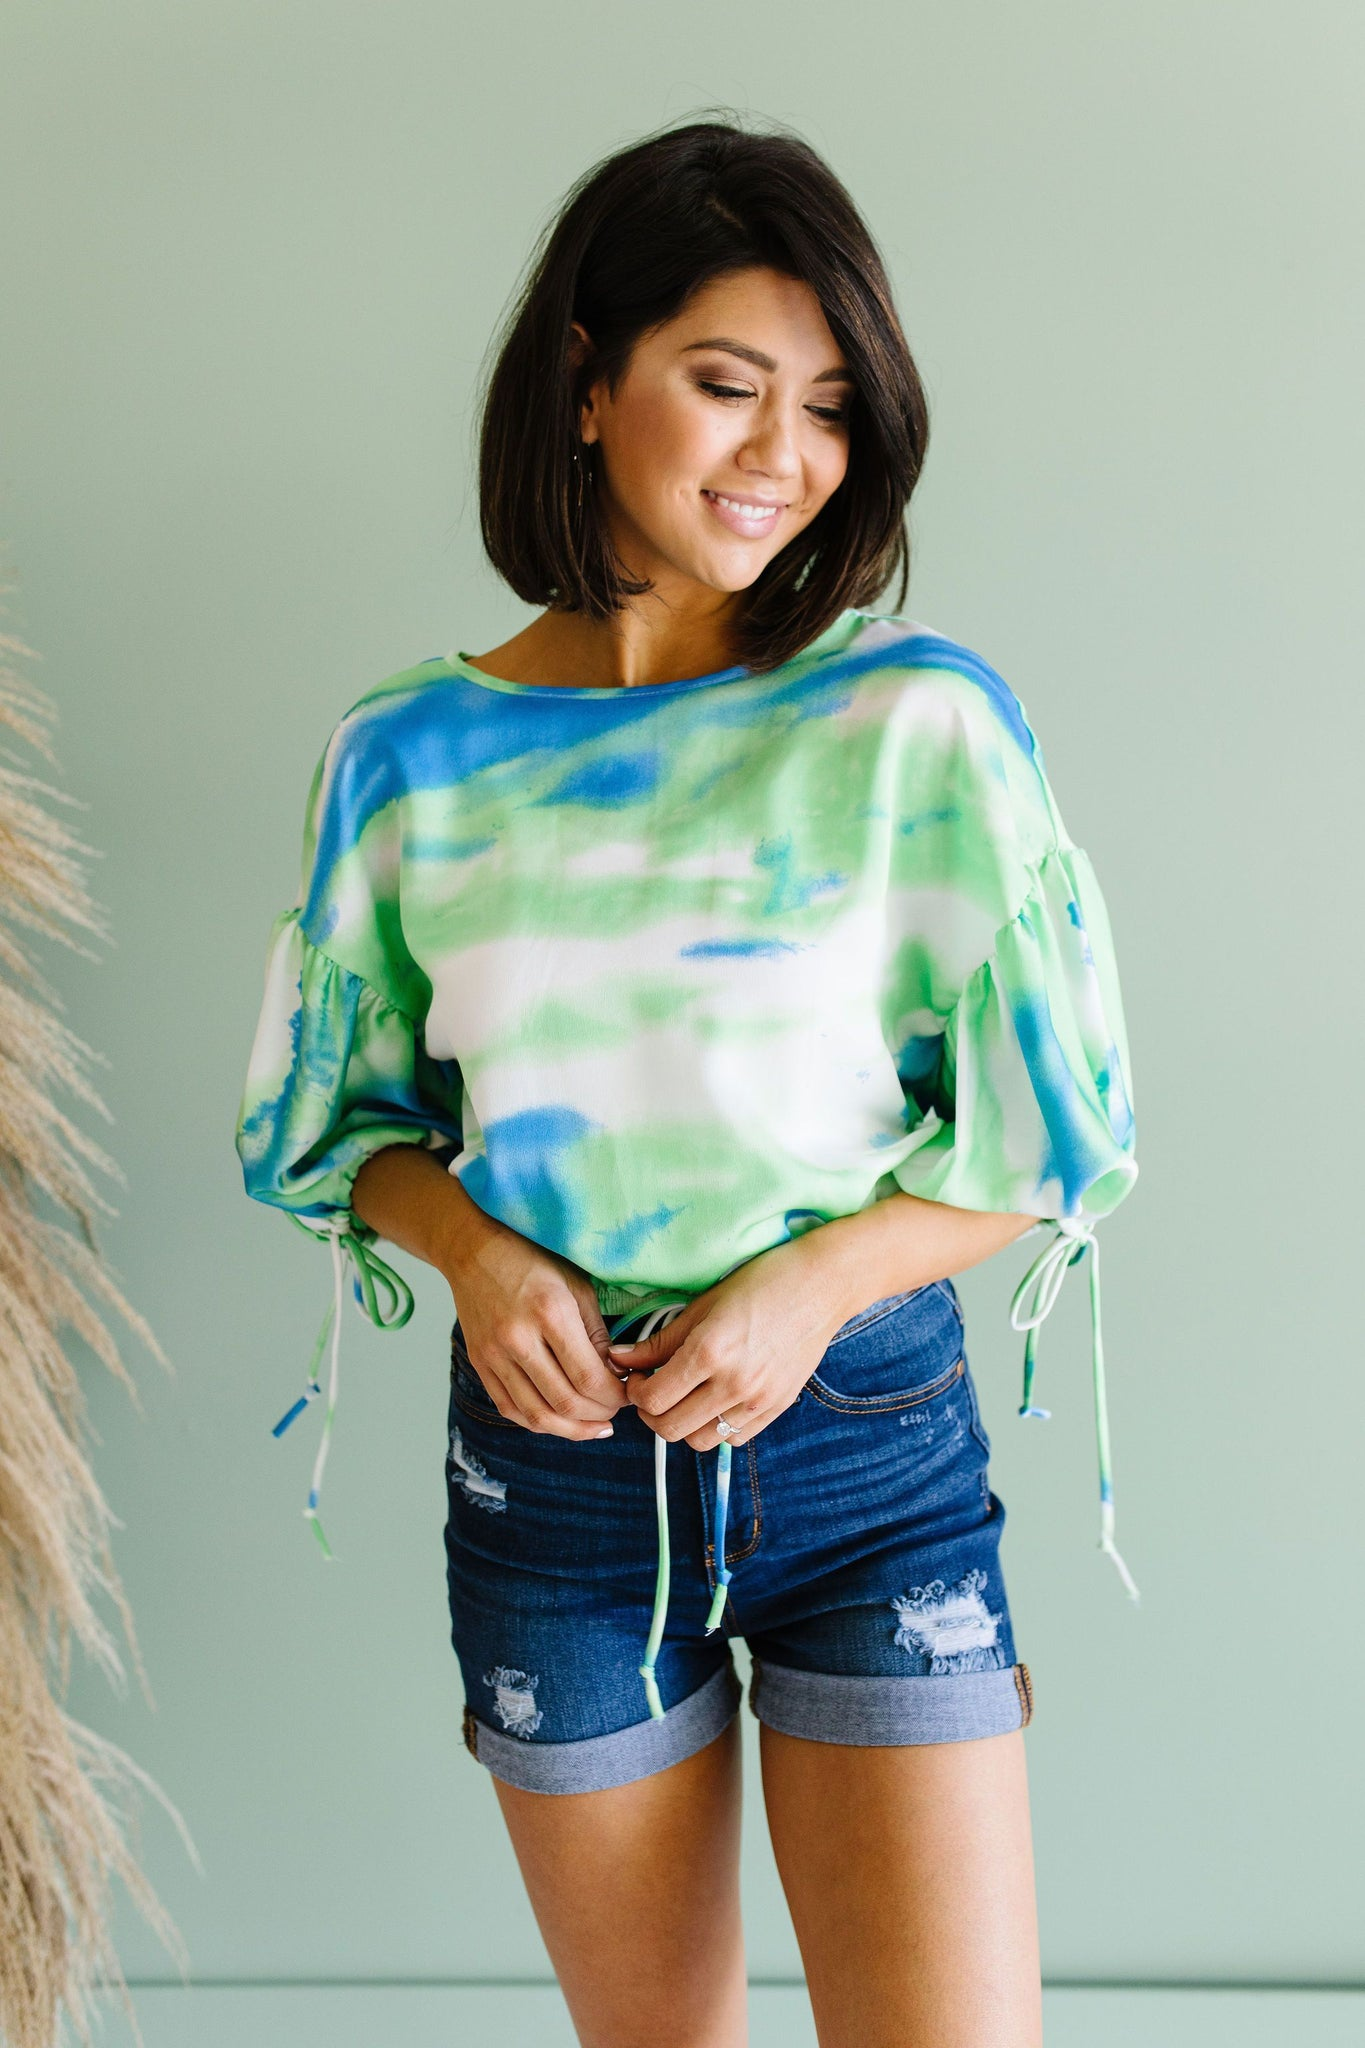 Bishop Sleeve Boho Crop Top In Turquoise & Mint